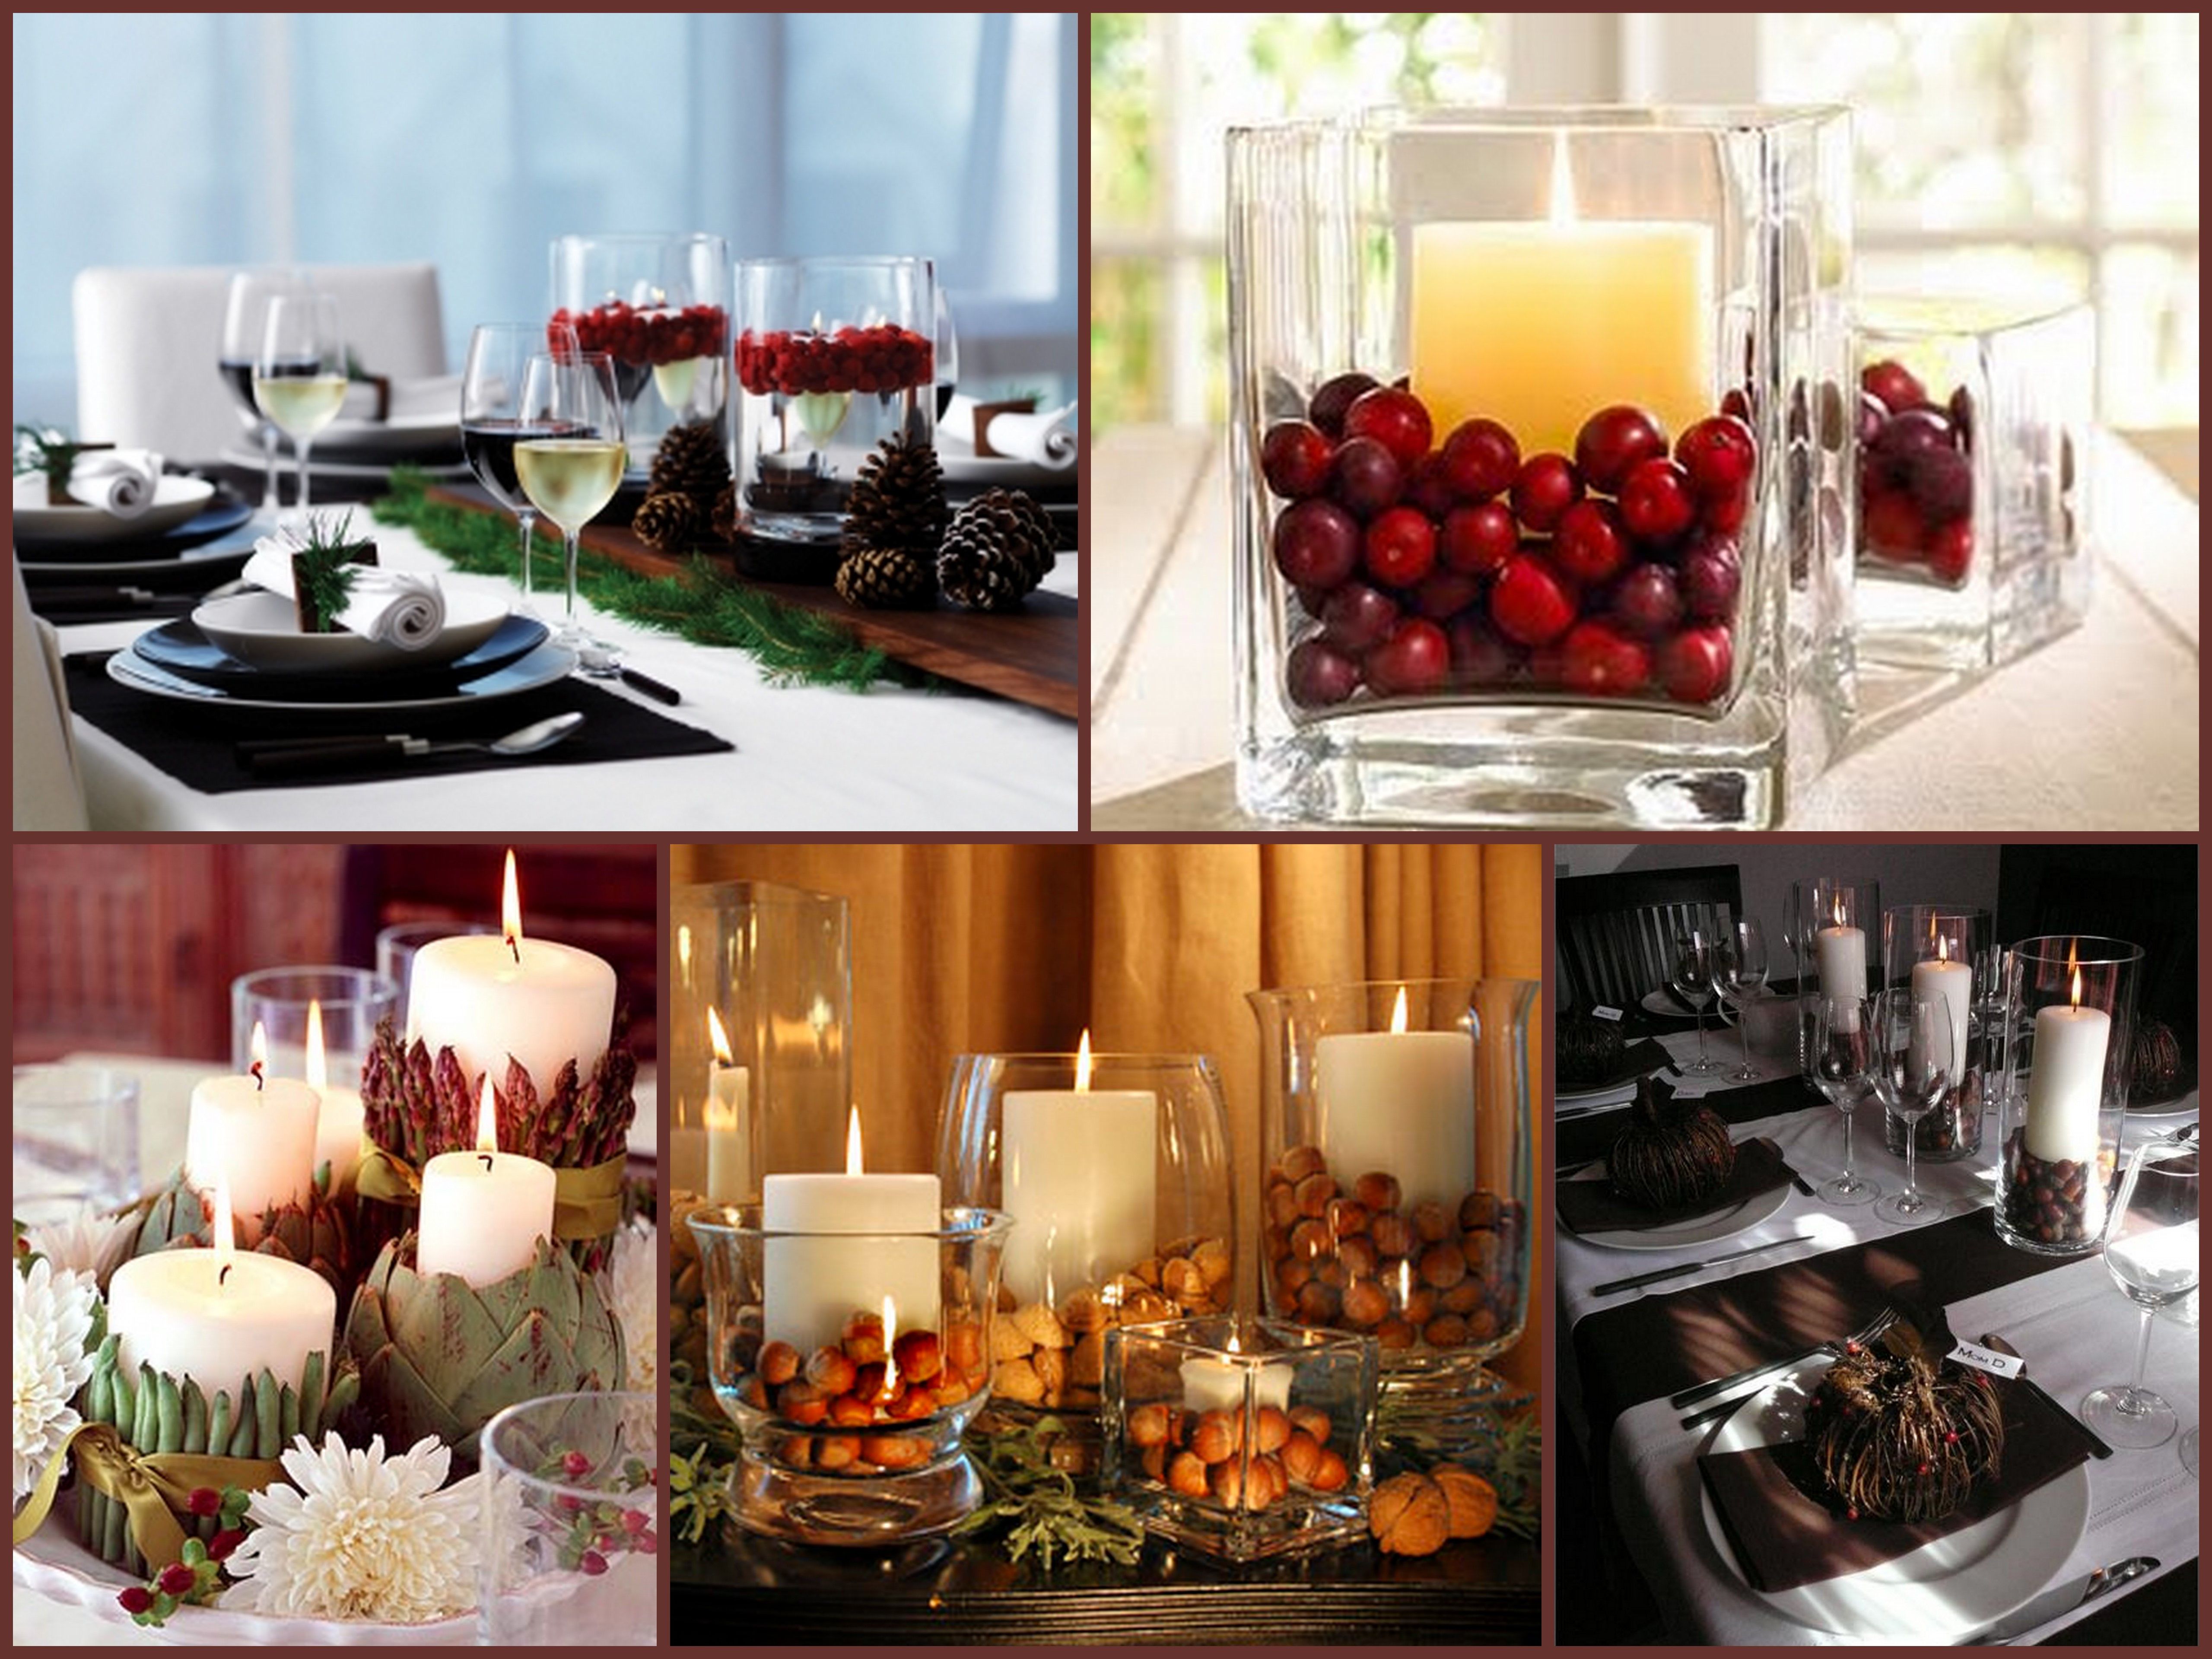 Simple Thanksgiving Table Decorations  Last Minute Holiday Centerpiece – A S D INTERIORS BLOG